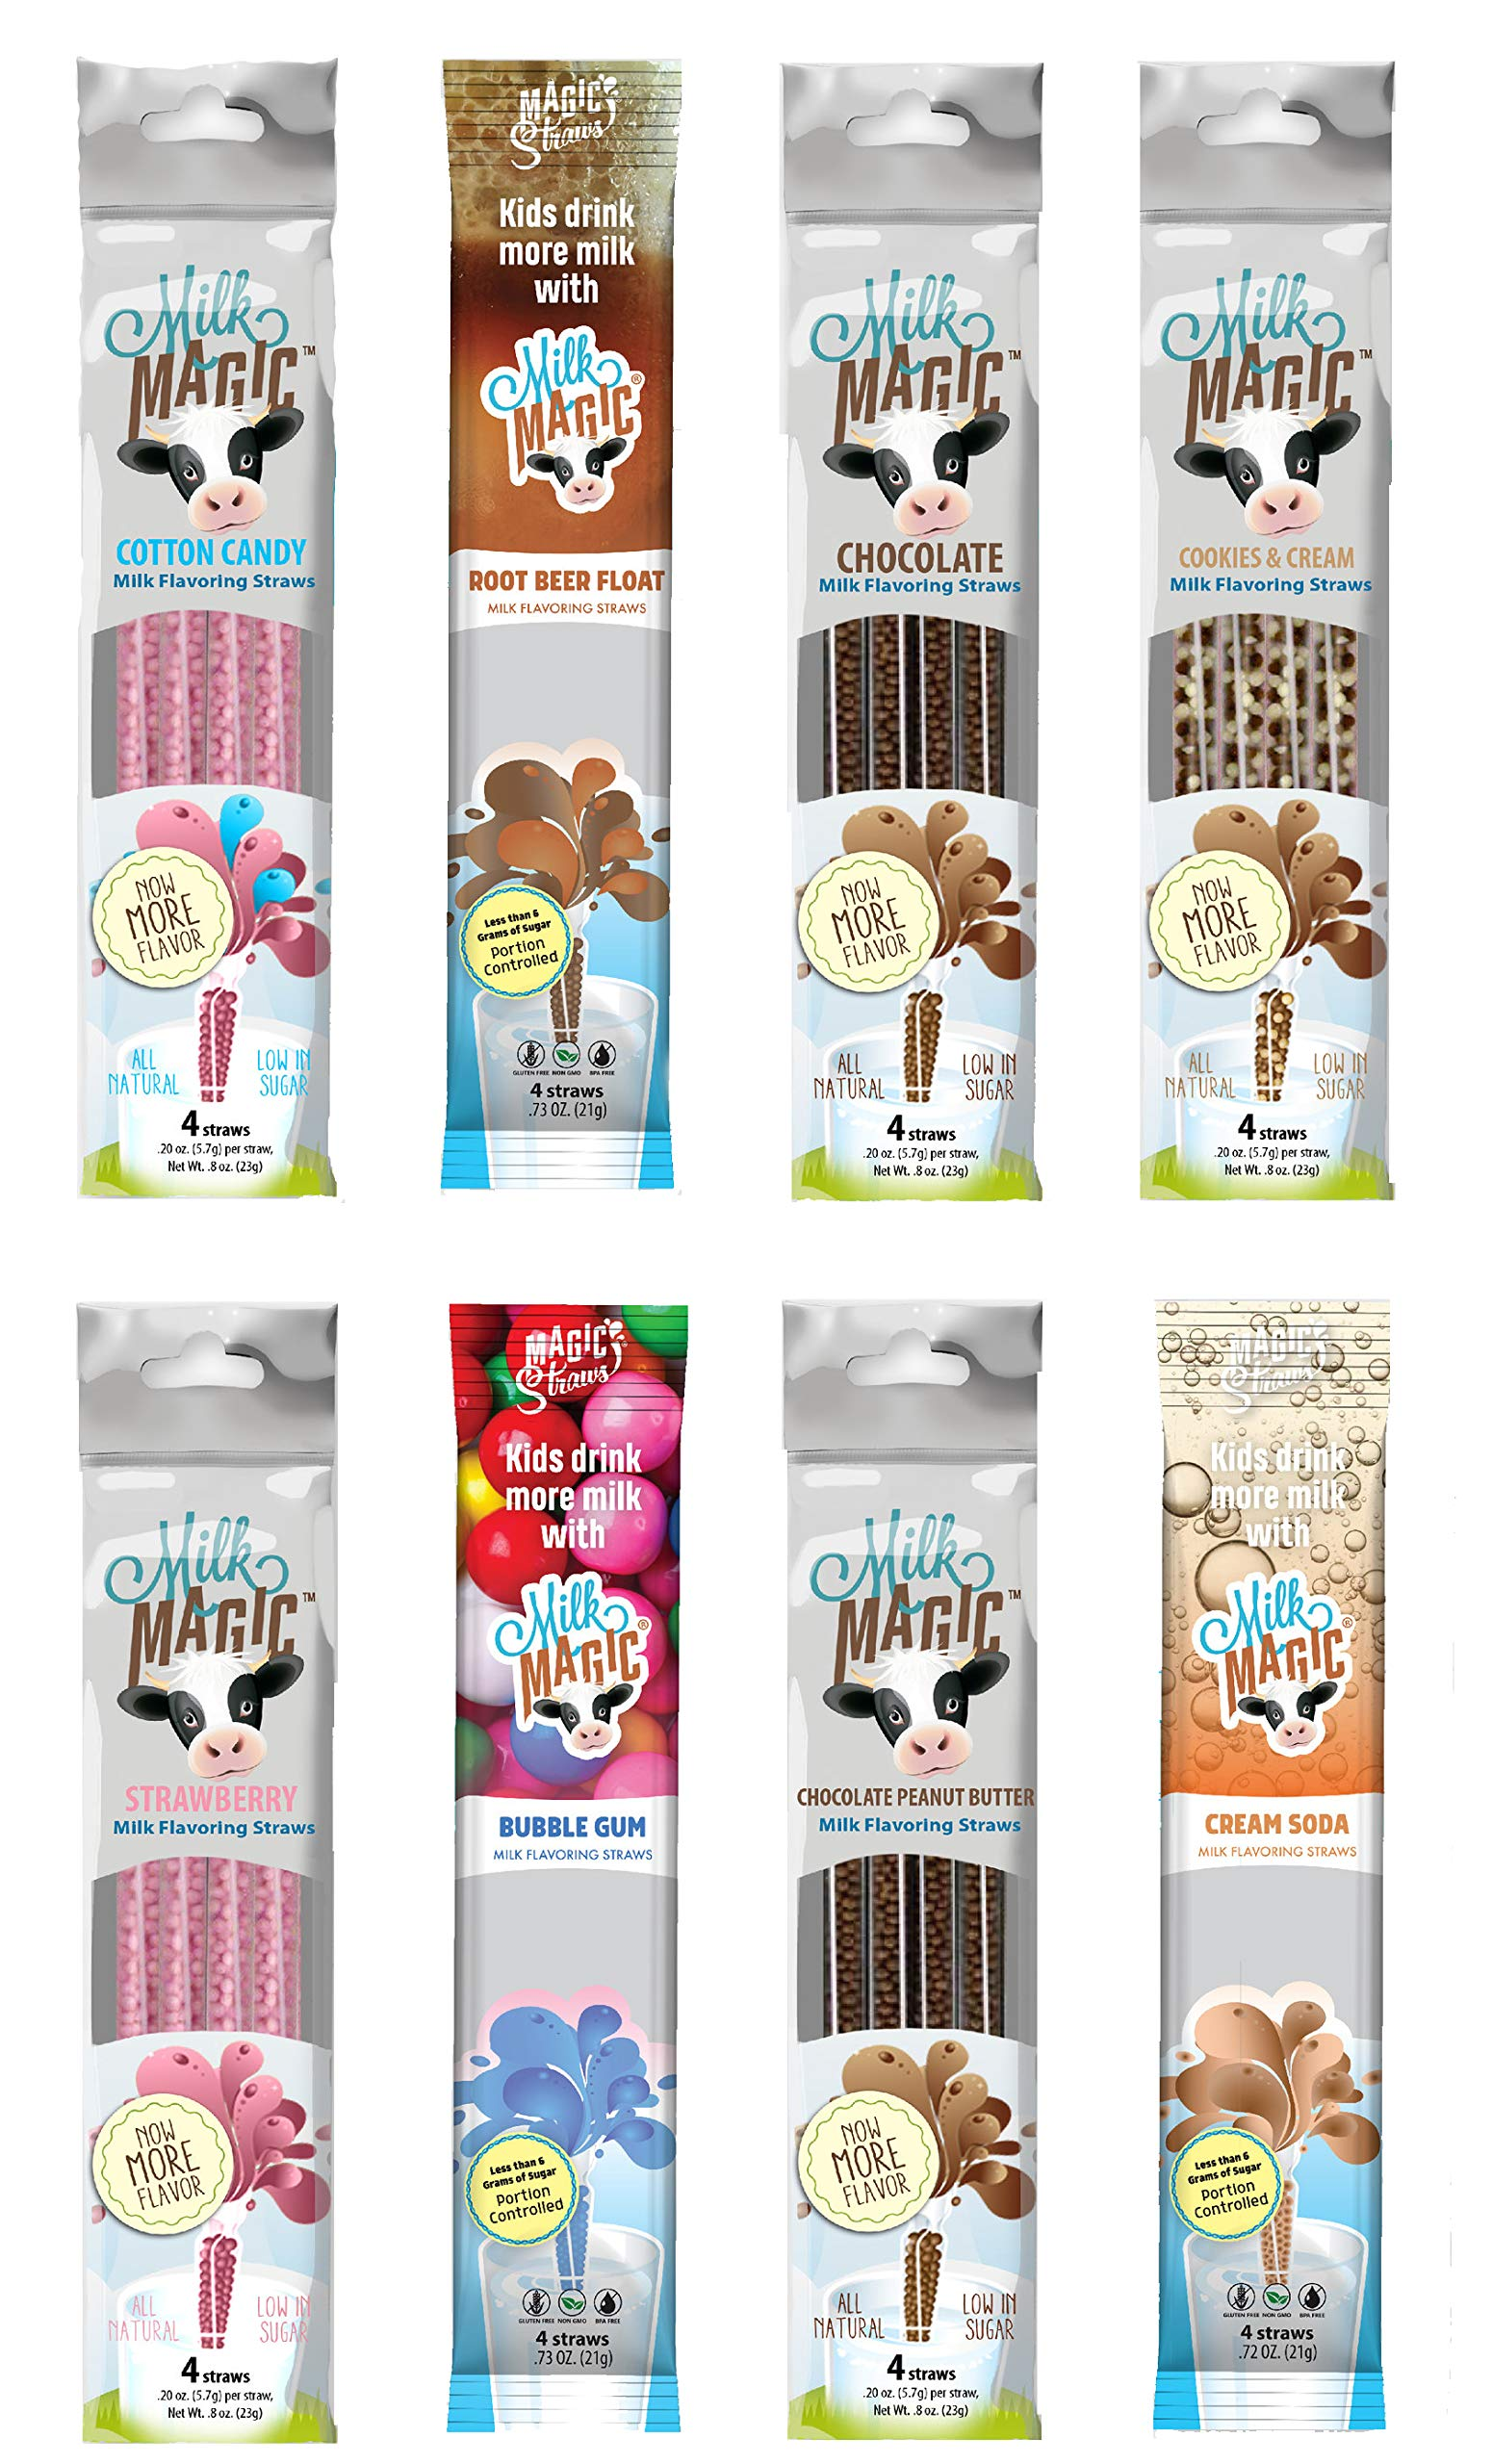 Milk Magic Milk Flavoring Straws 32 Straw Variety Pack Flavors May Include: Cookies and Cream, Chocolate, Strawberry, Cotton Candy, Root Beer Float, Cream Soda, Chocolate Peanut Butter and Bubble Gum